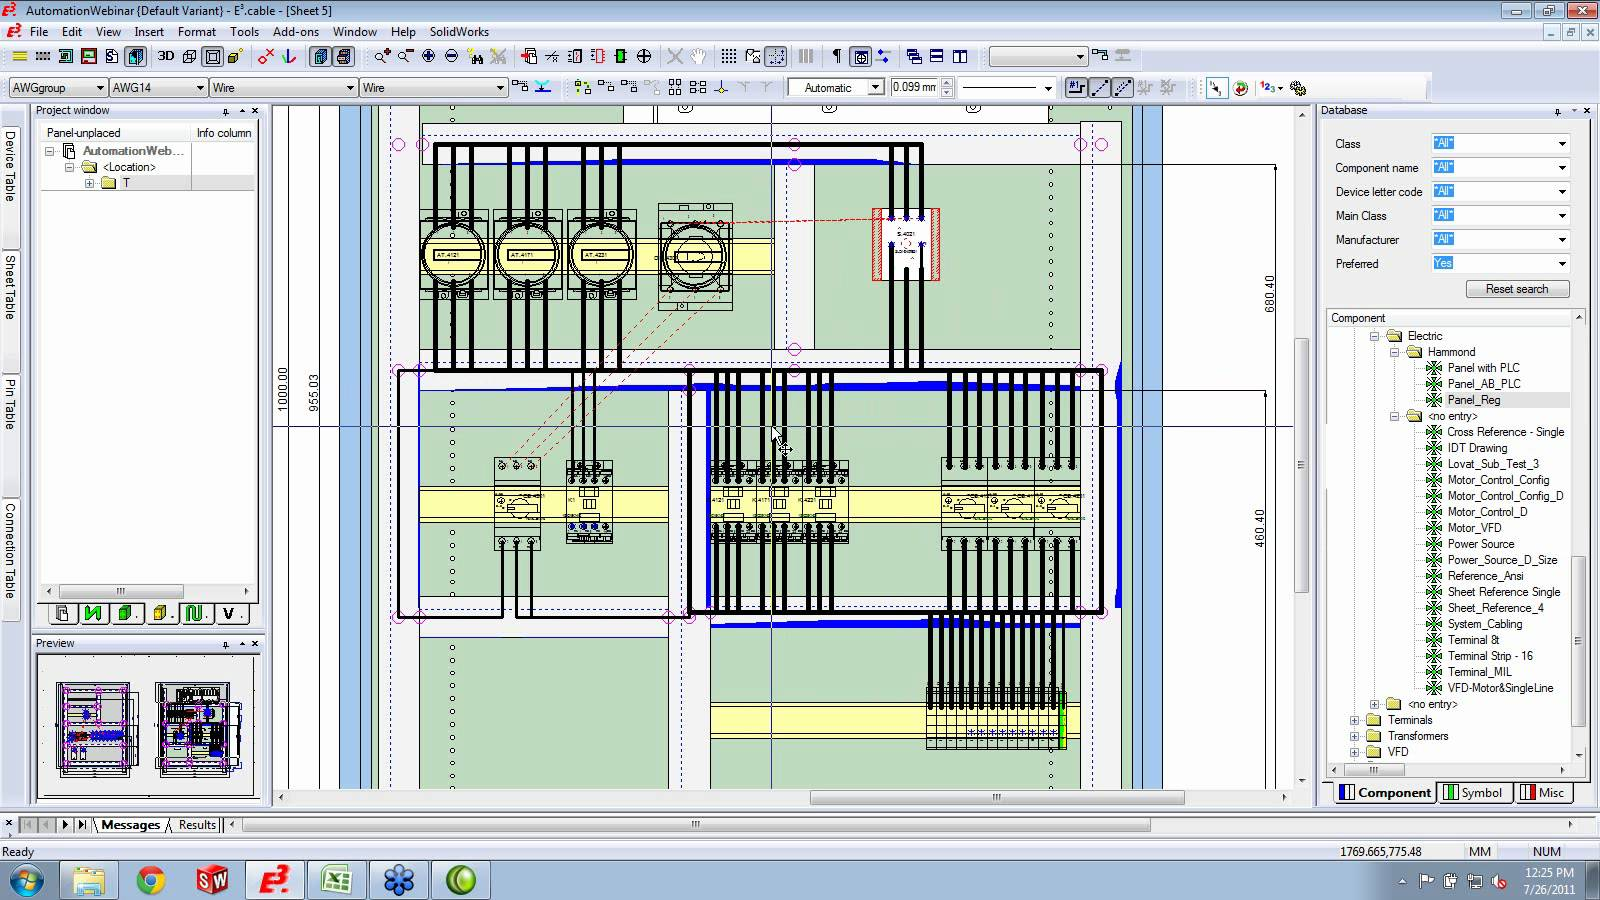 Free Electrical Drawing At For Personal Use Gem Wiring Diagram 26 1600x900 Software Drawings Xml To Visio